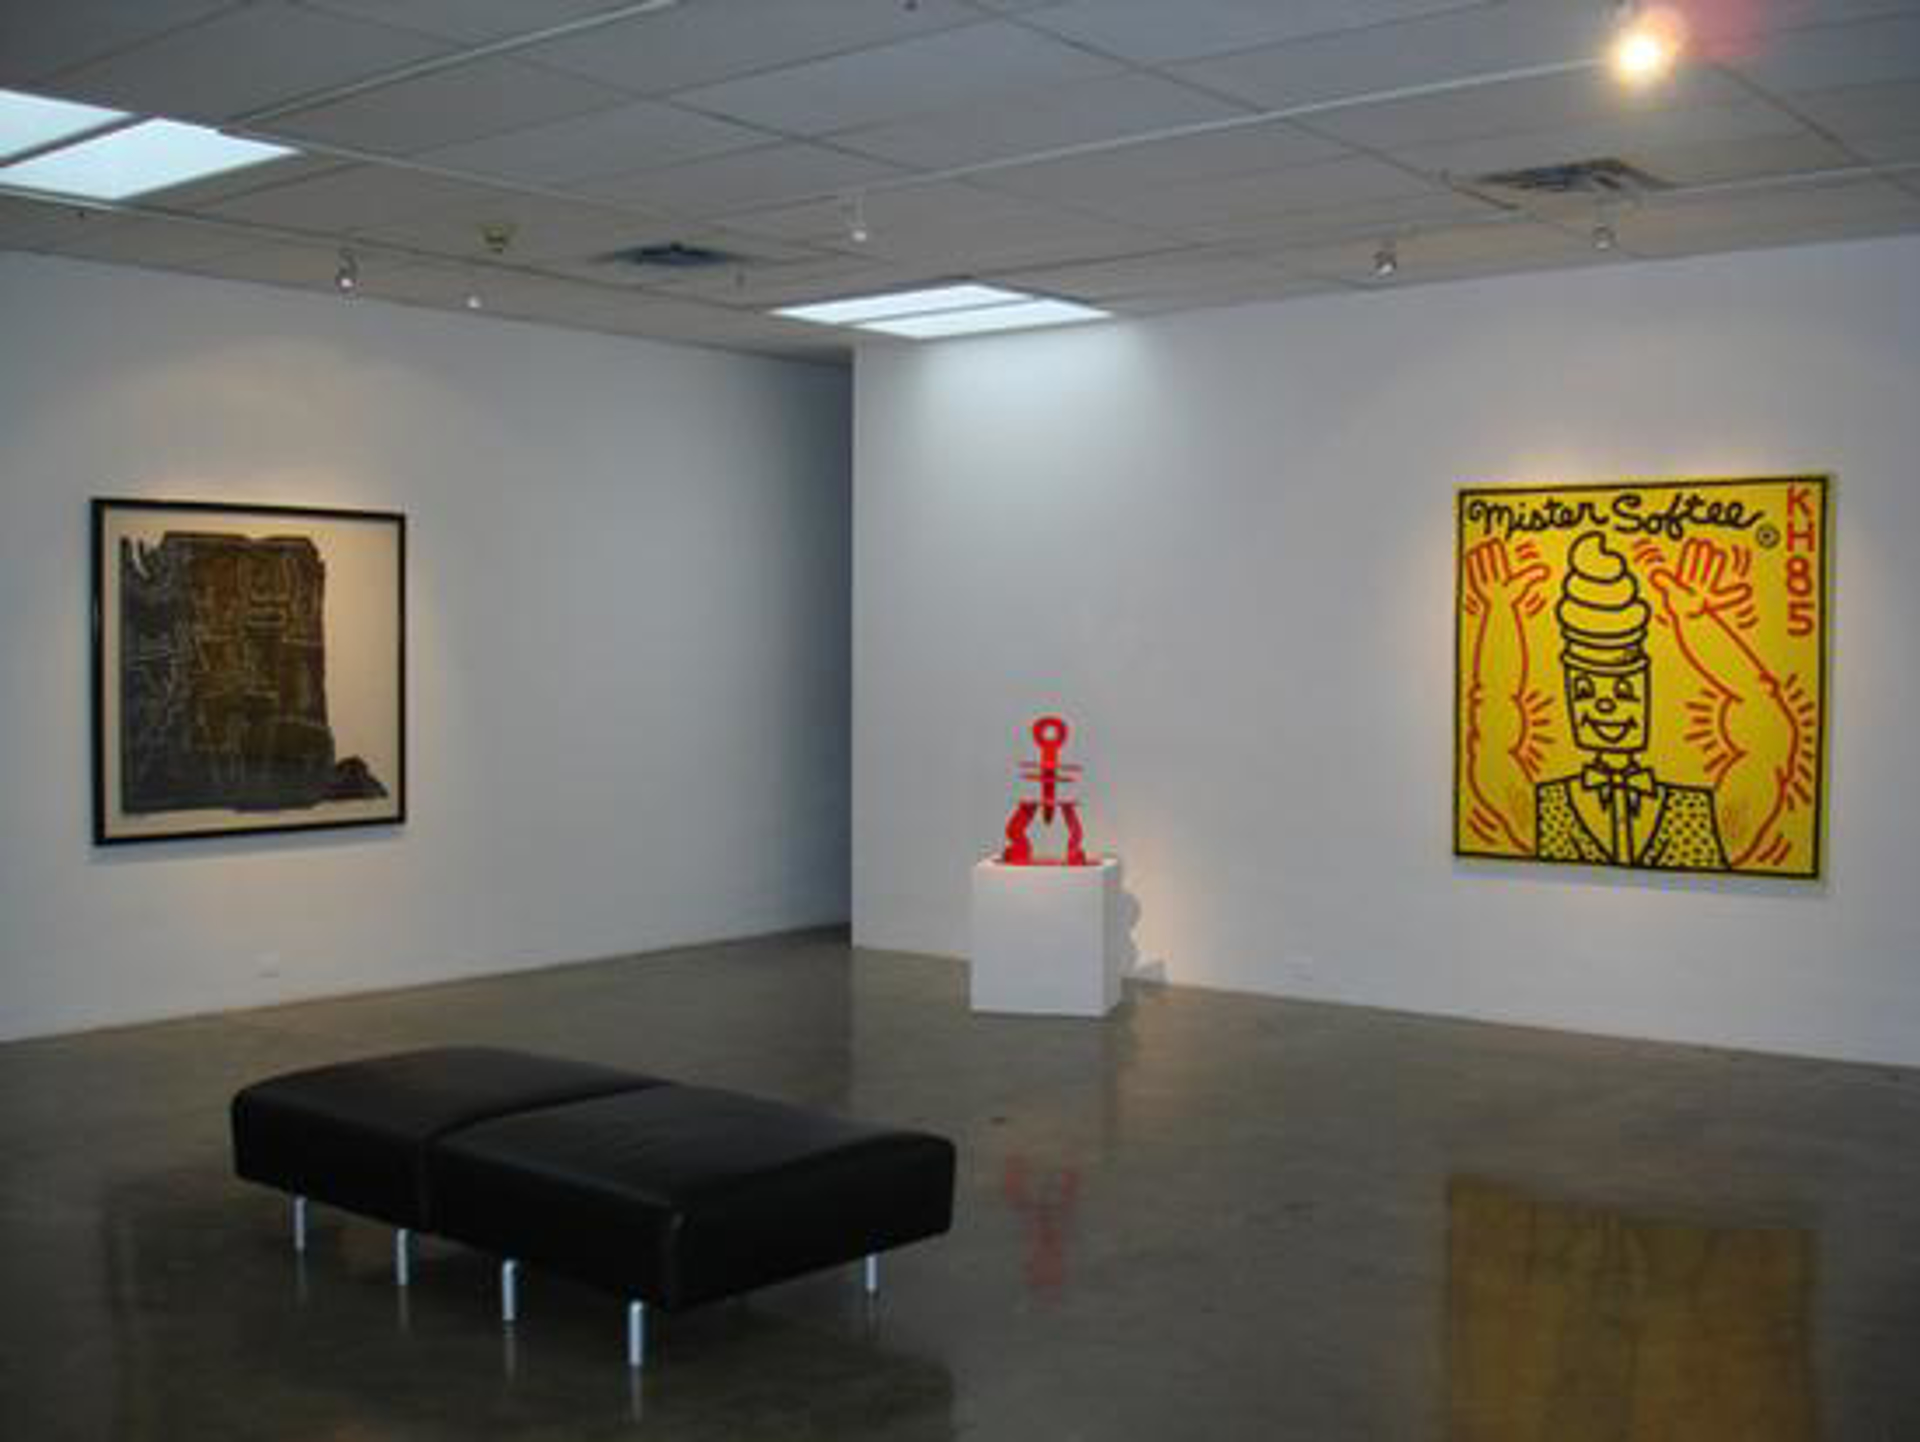 Untitled Robots, Figures and Radiant Angel by Keith Haring